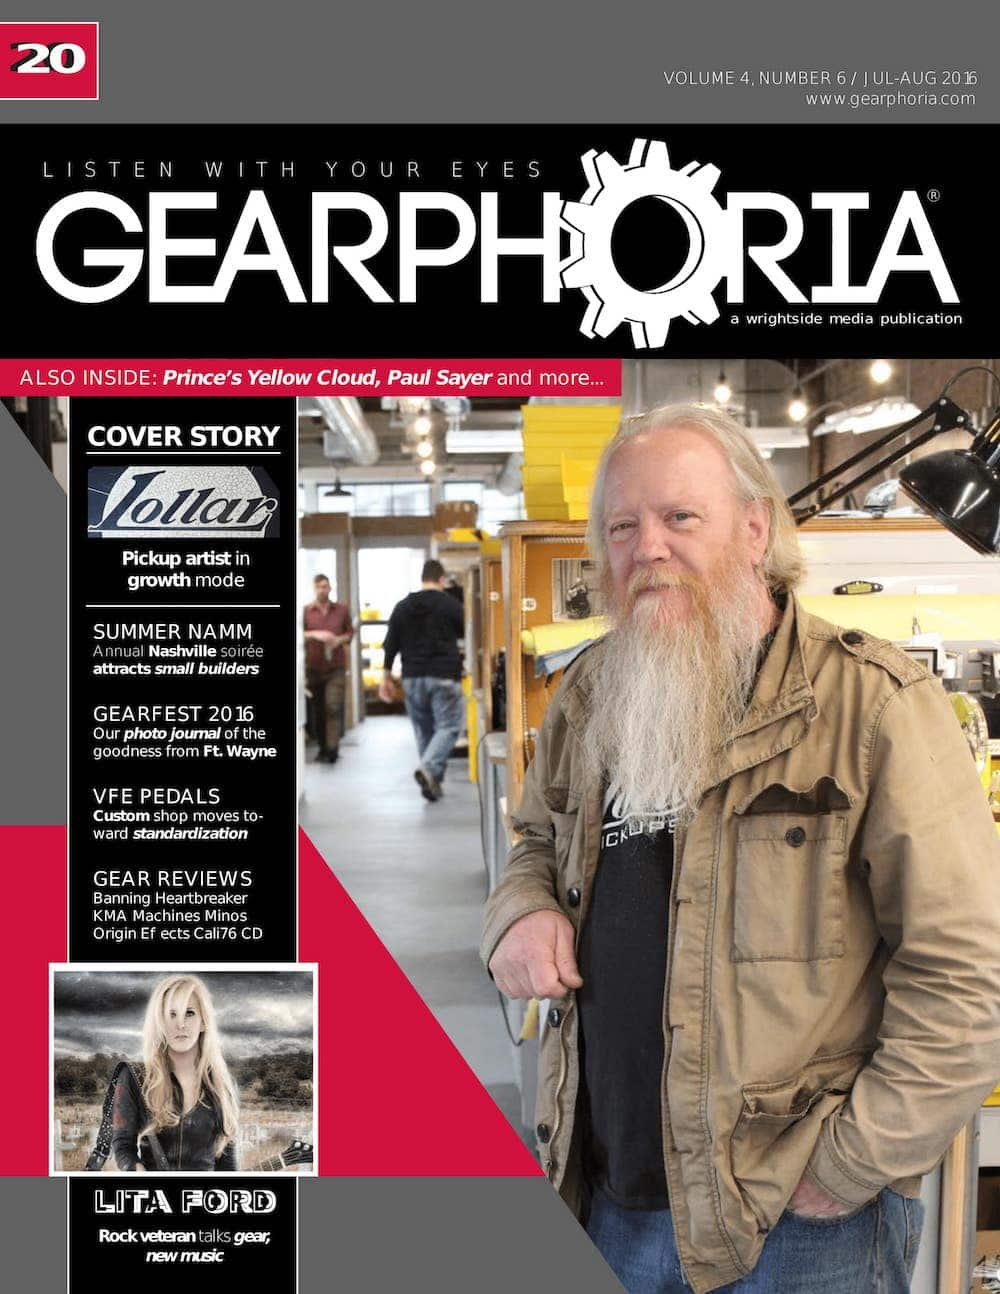 Gearphoria issue 20 July 2016 Origin Effects Cali76 Compact Deluxe Review Origin Effects Cali76 Compact Deluxe Analog Boutique Compressor Guitar Effects Pedal